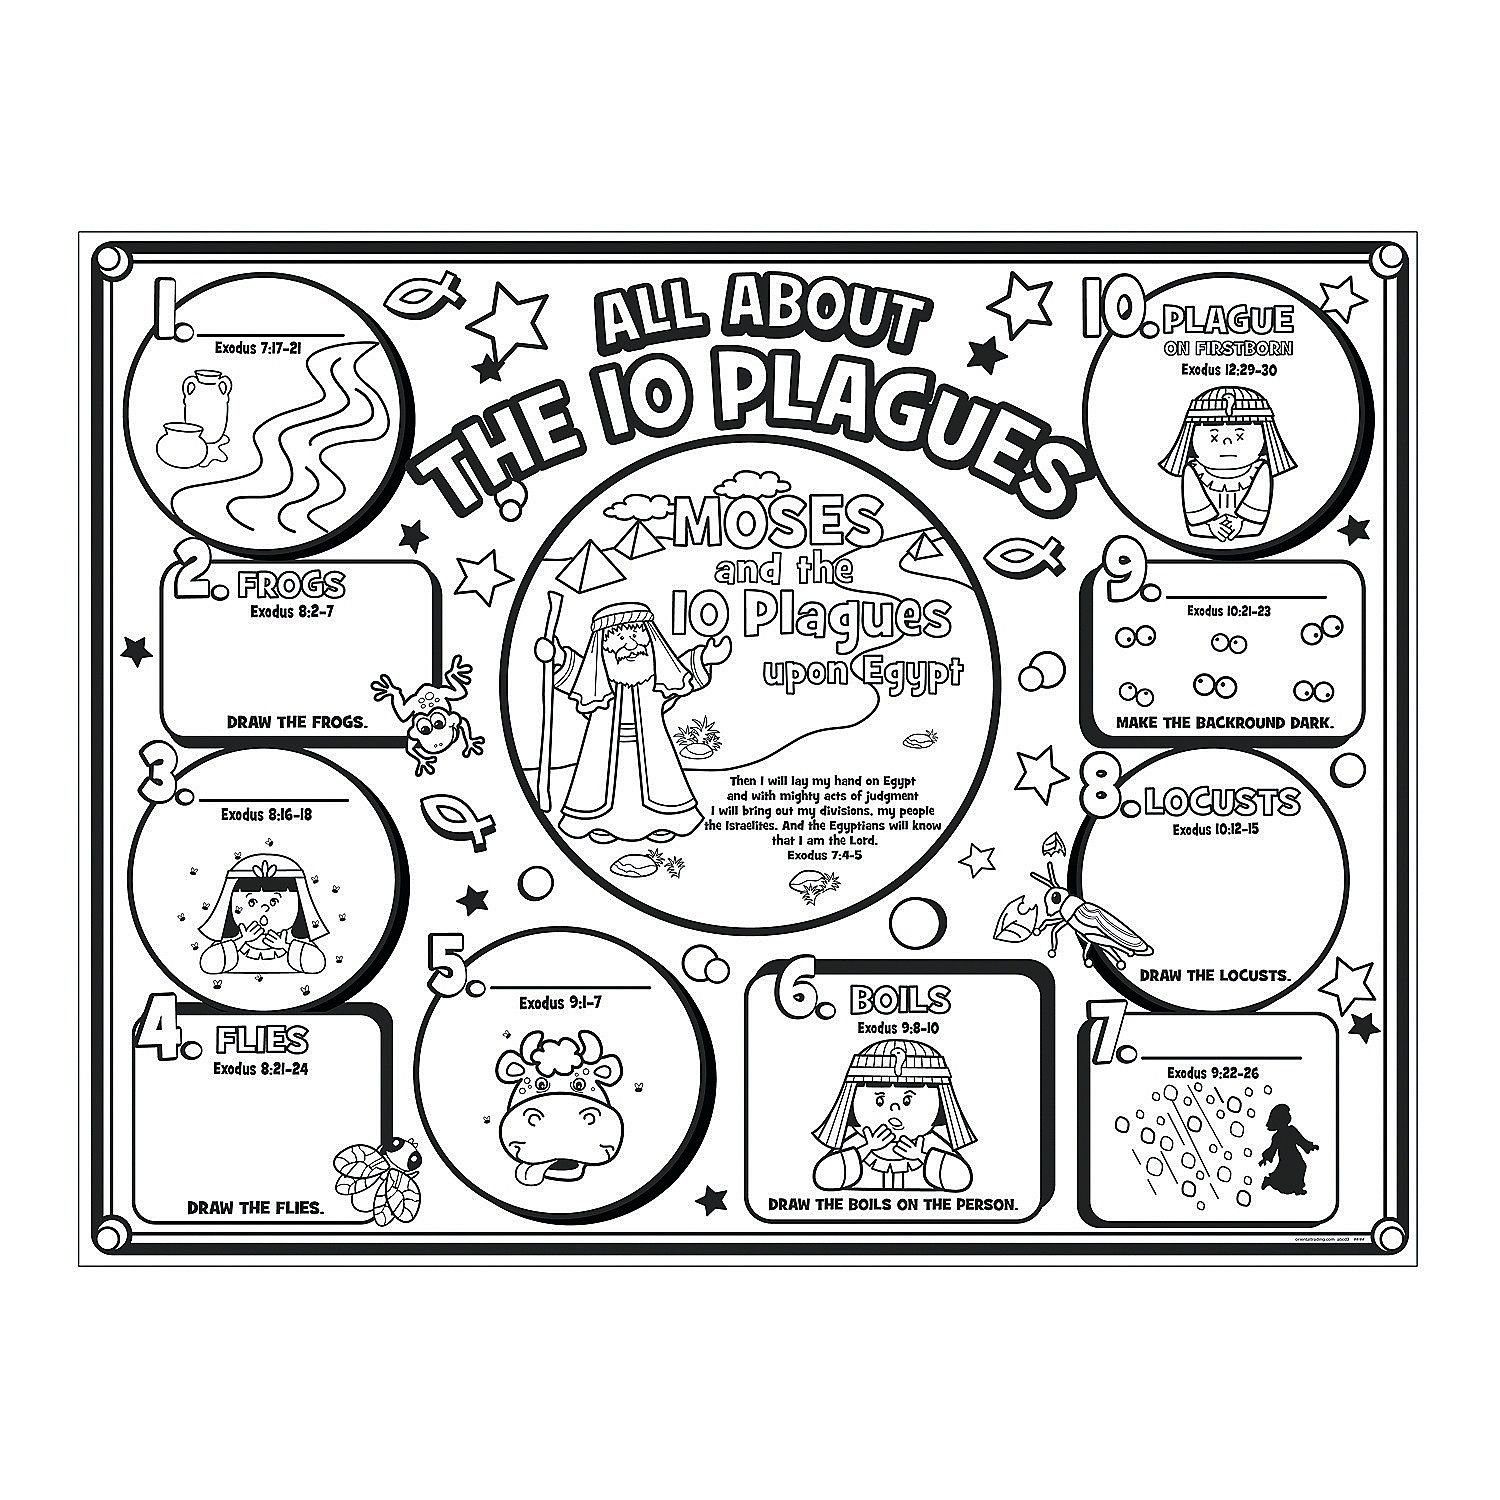 10 plagues coloring page az coloring pages for 10 plagues coloring pages